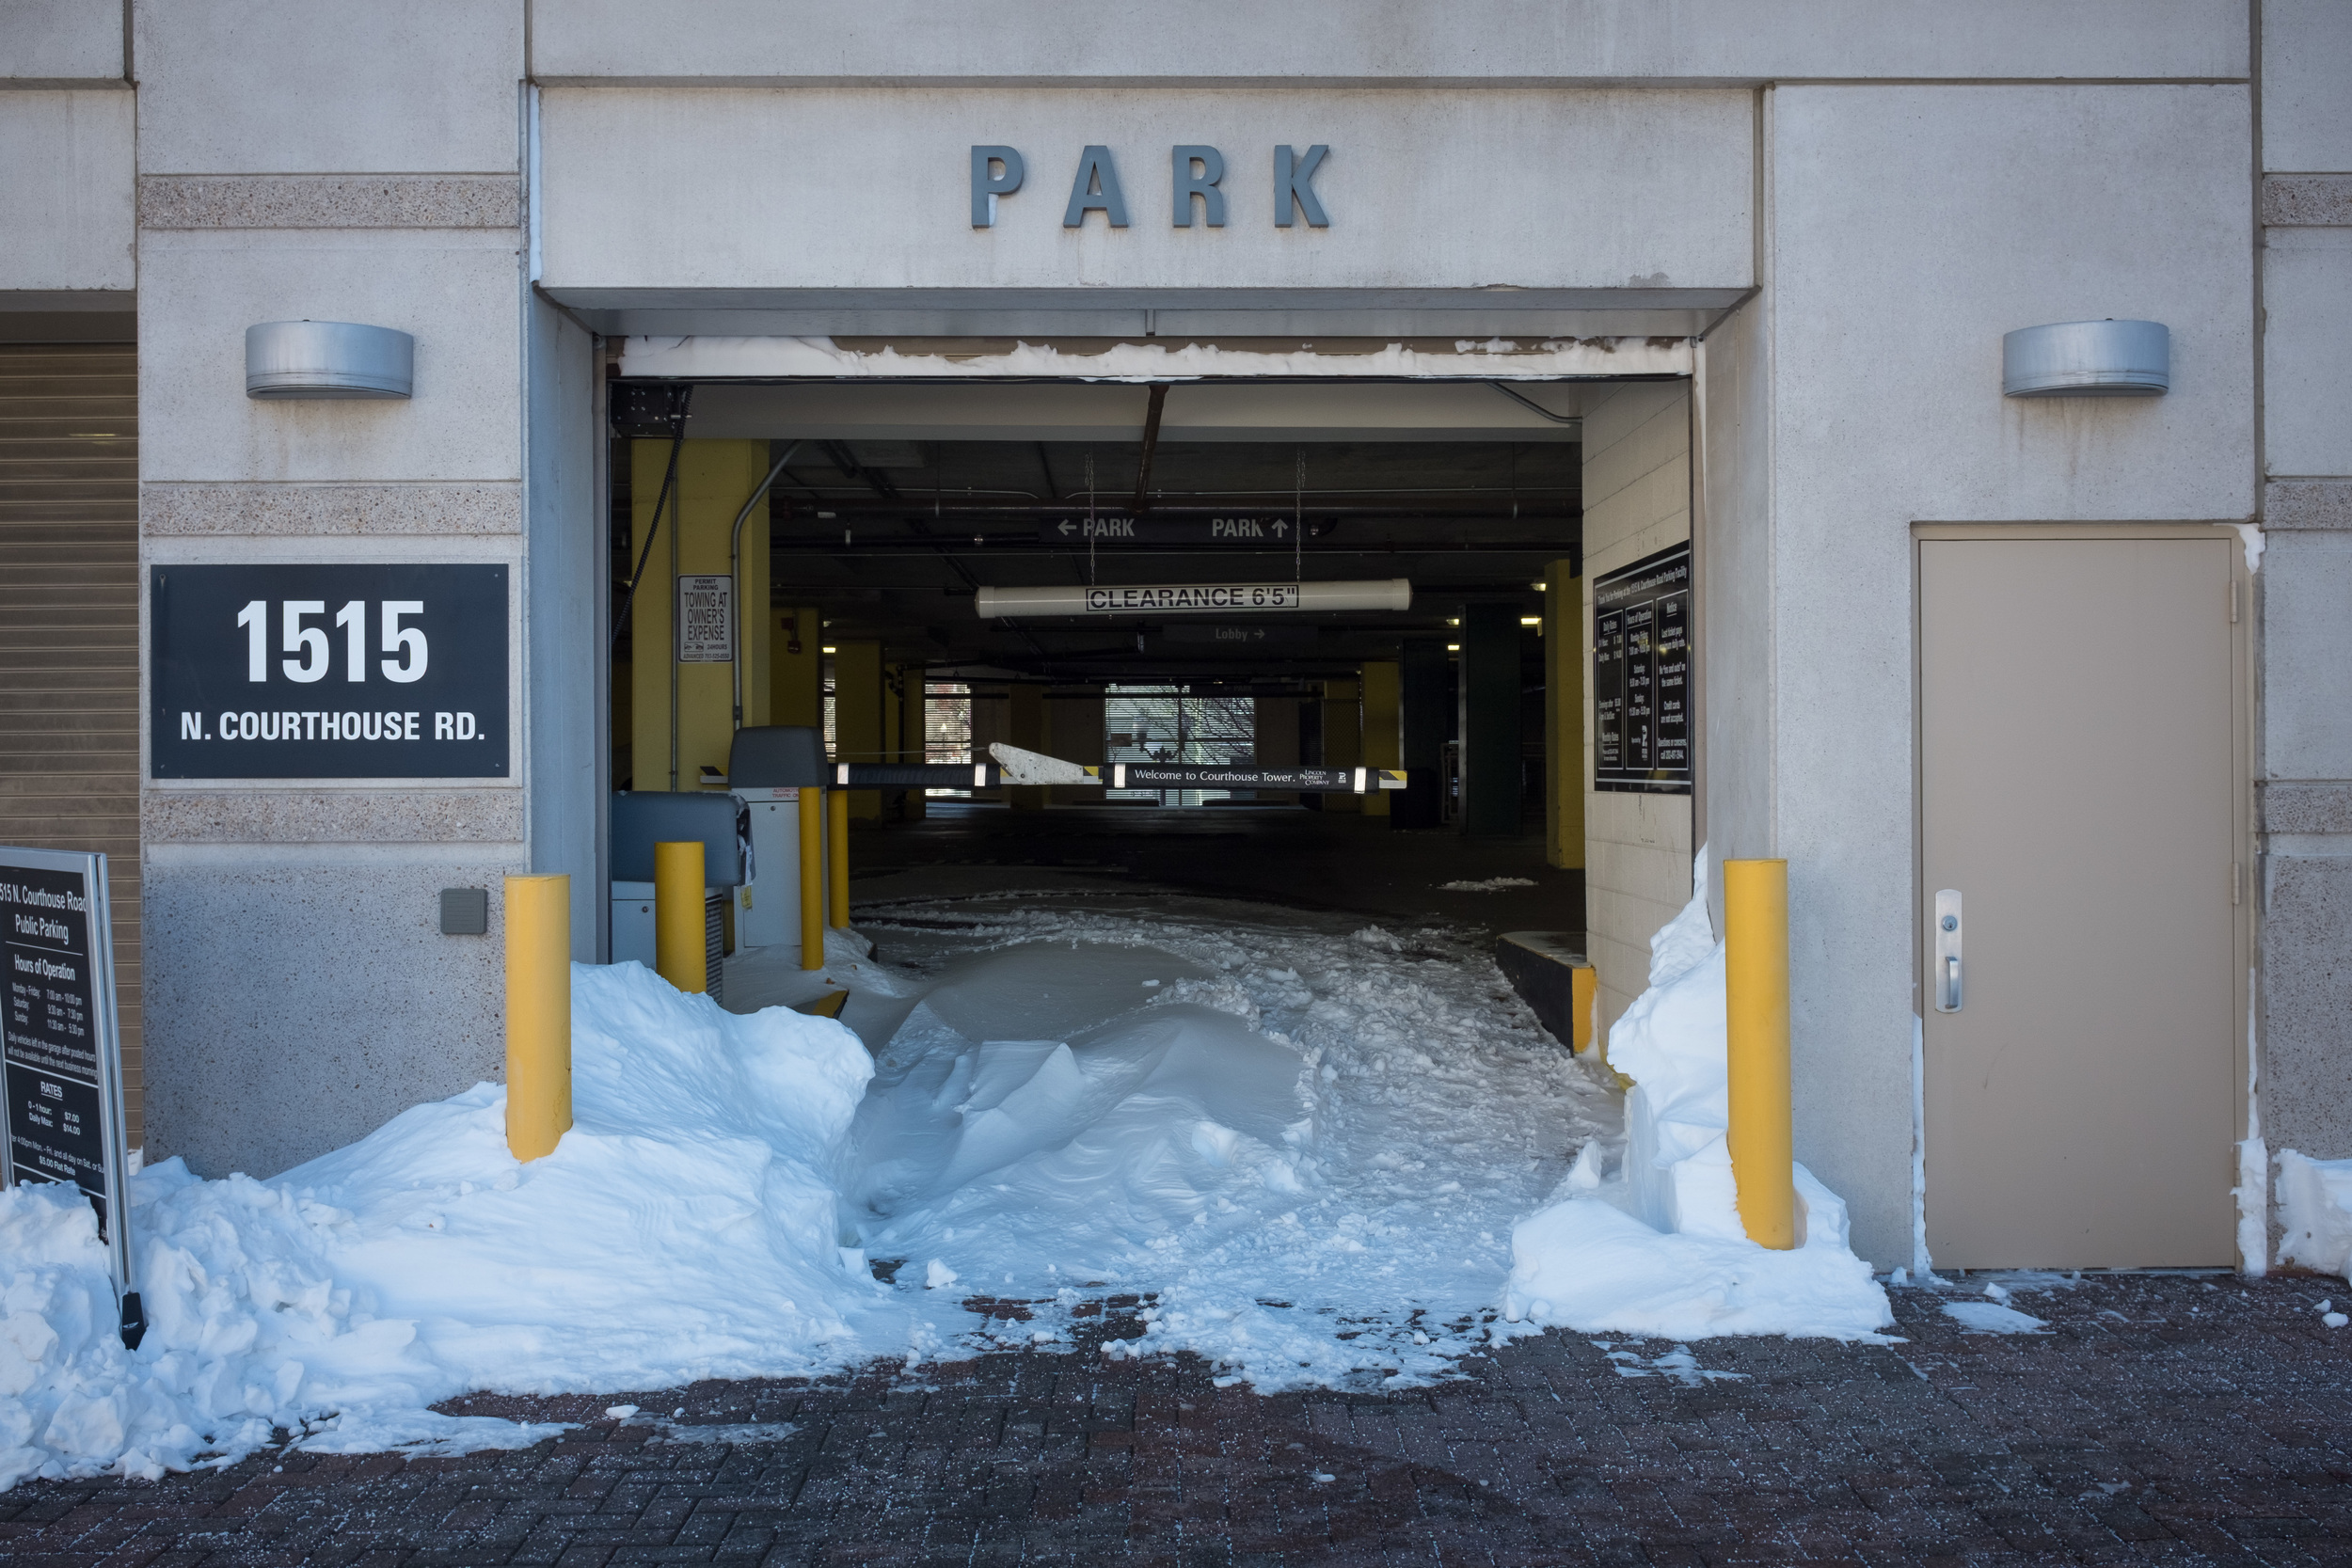 What drew my eye to this scene was just how far-reaching and intrusive the snow was, even entering the parking garage that no cars had entered. I also like the symmetry of the opening and the splash of color from the poles.